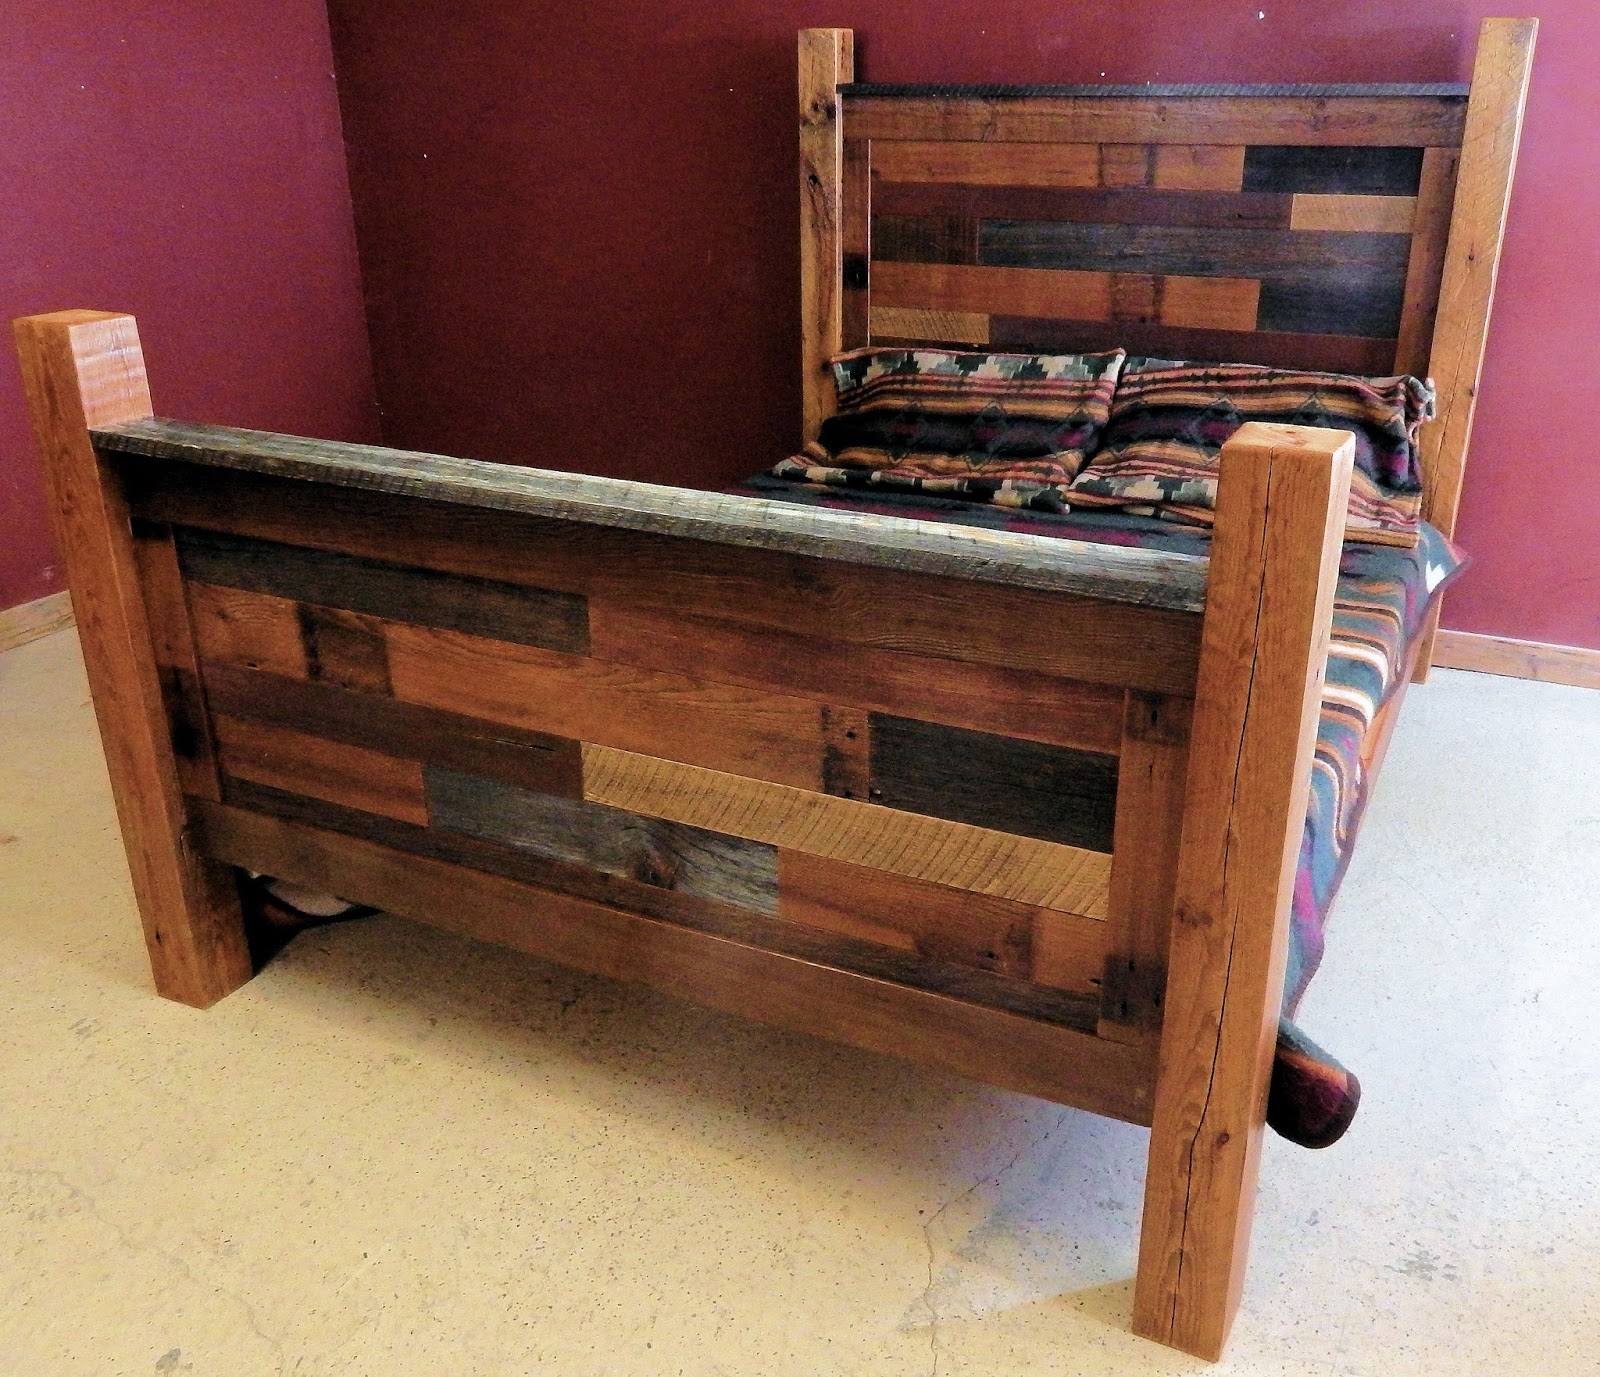 Vienna Woodworks Rustic Furniture Company Crafts Hand Made Rustic Furniture  In A Rural Waseca, Minnesota Location. All Of The Products Are Made On  Location ...